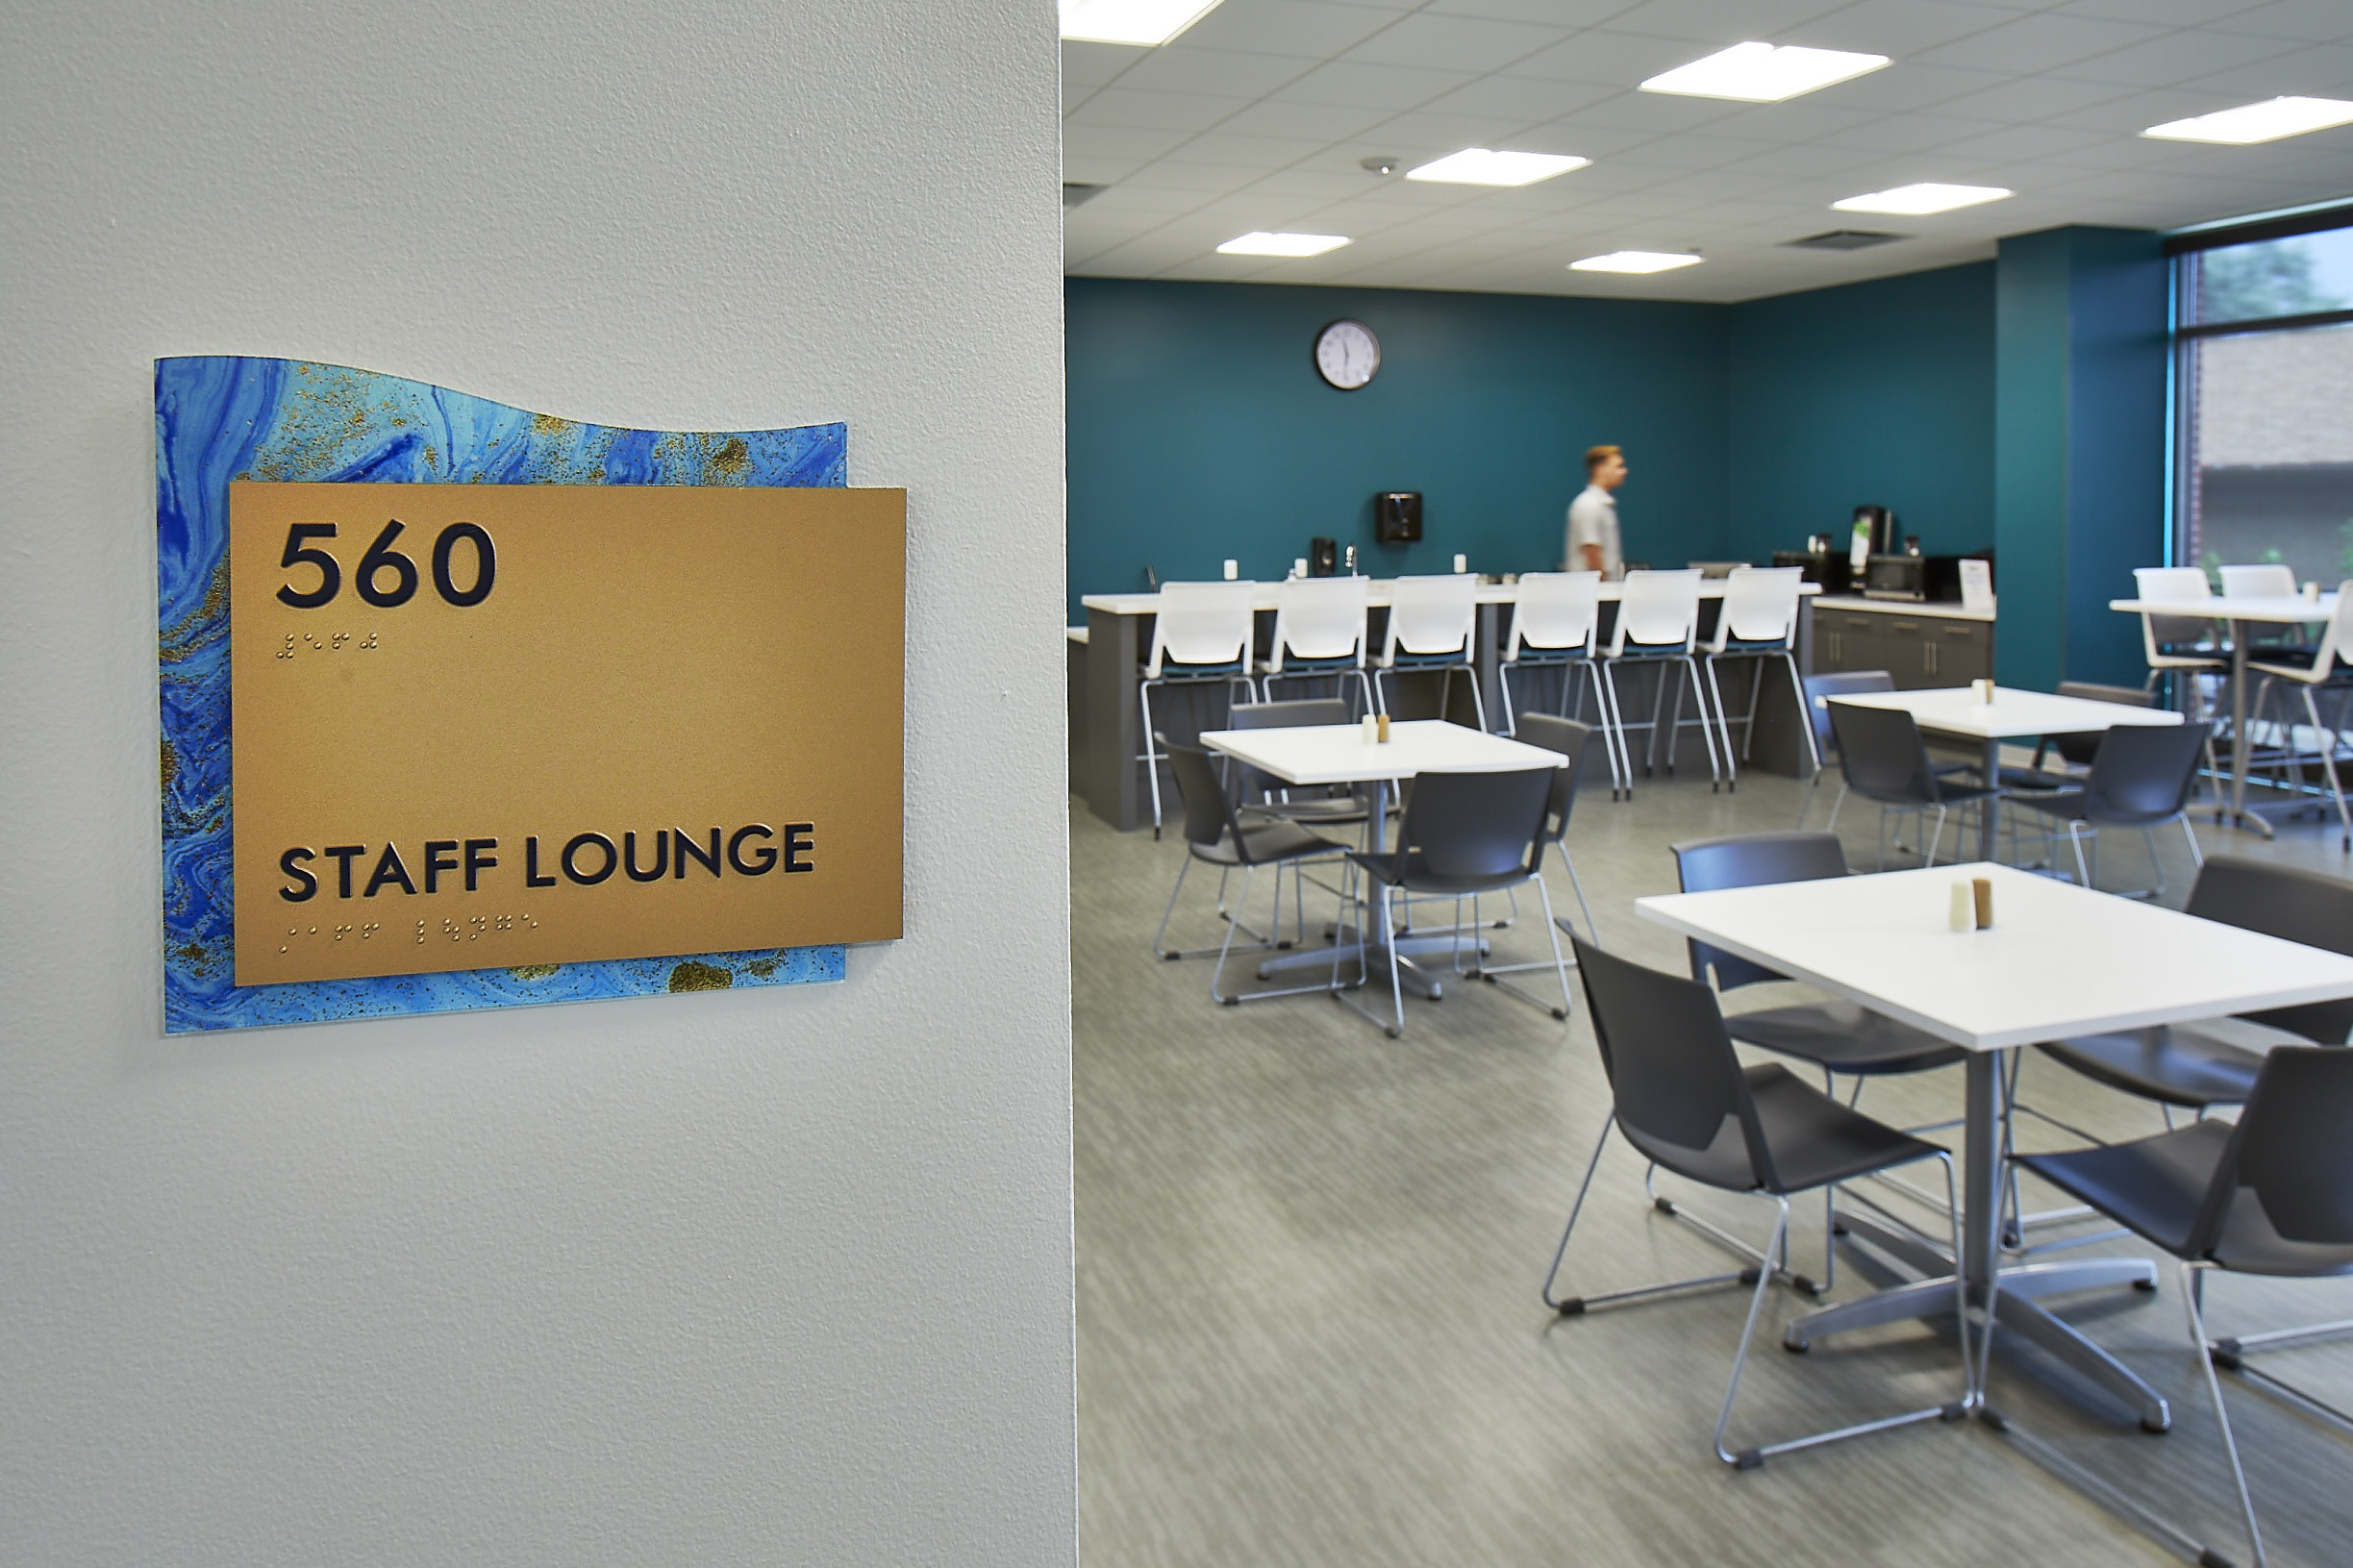 Staff Lounge Sign with blue and gold backing  on a wall next to a lounge with tables